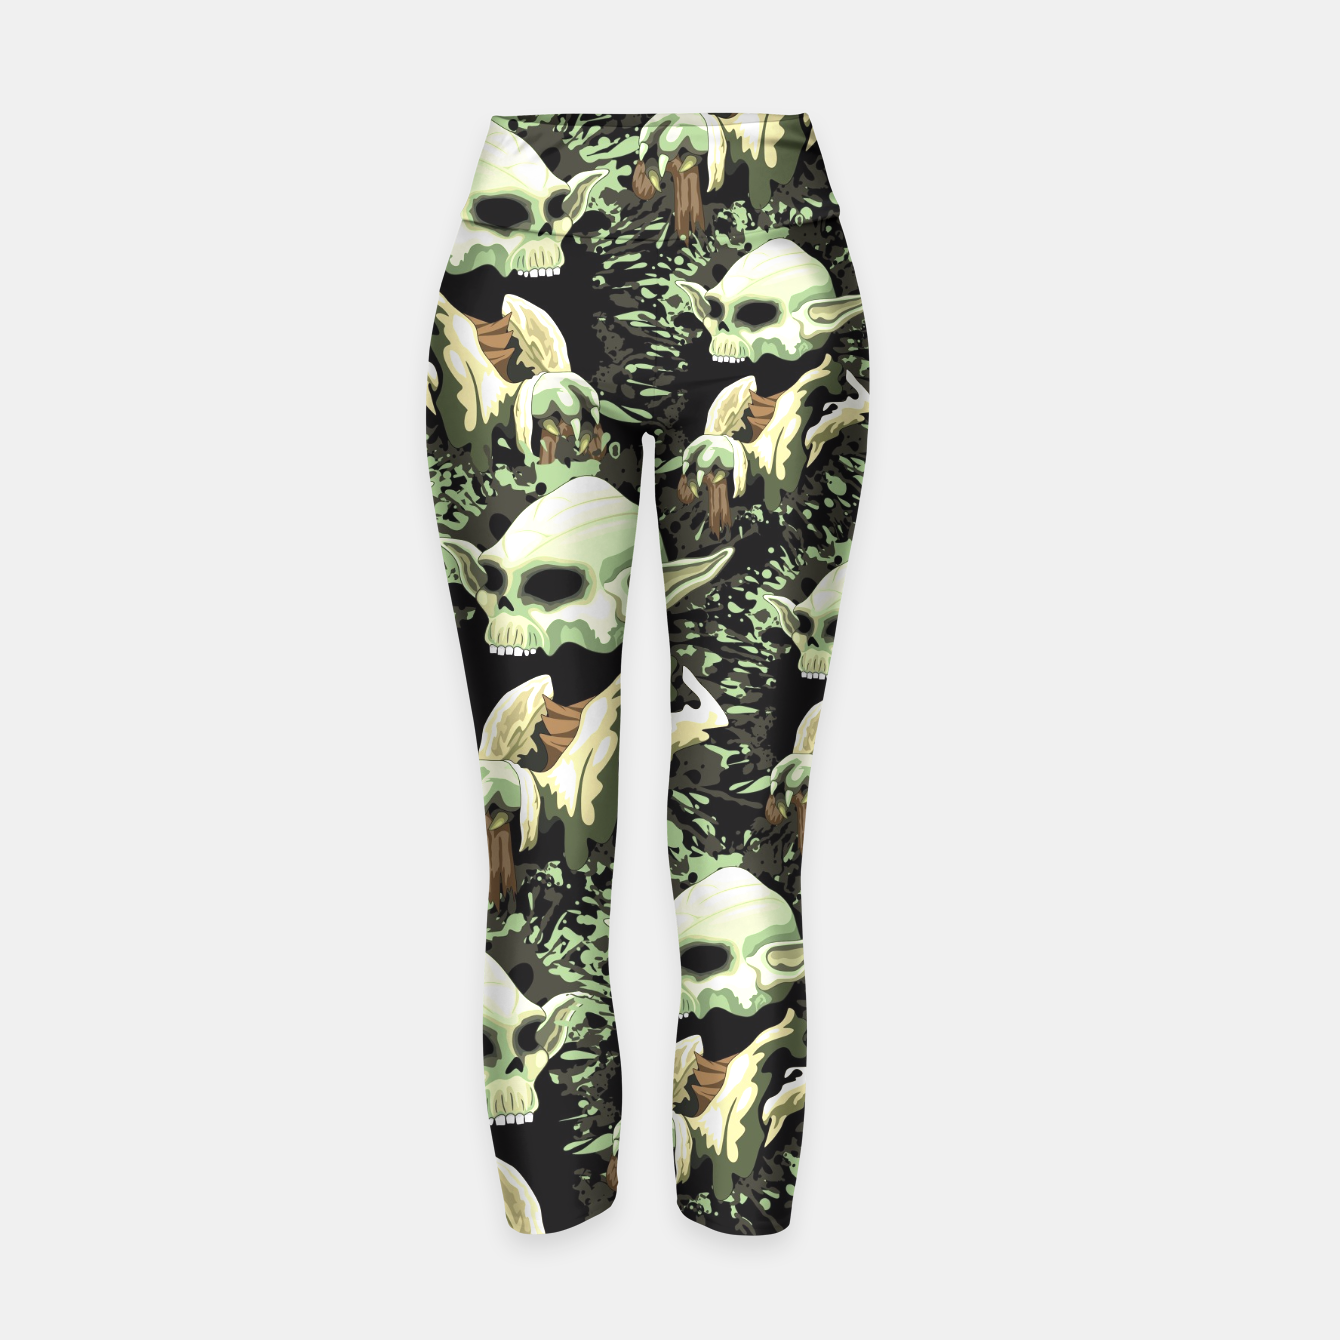 Skull Yoda Jedi Yoga Pants - Design by BluedarkArt - LiveHeroes Shop